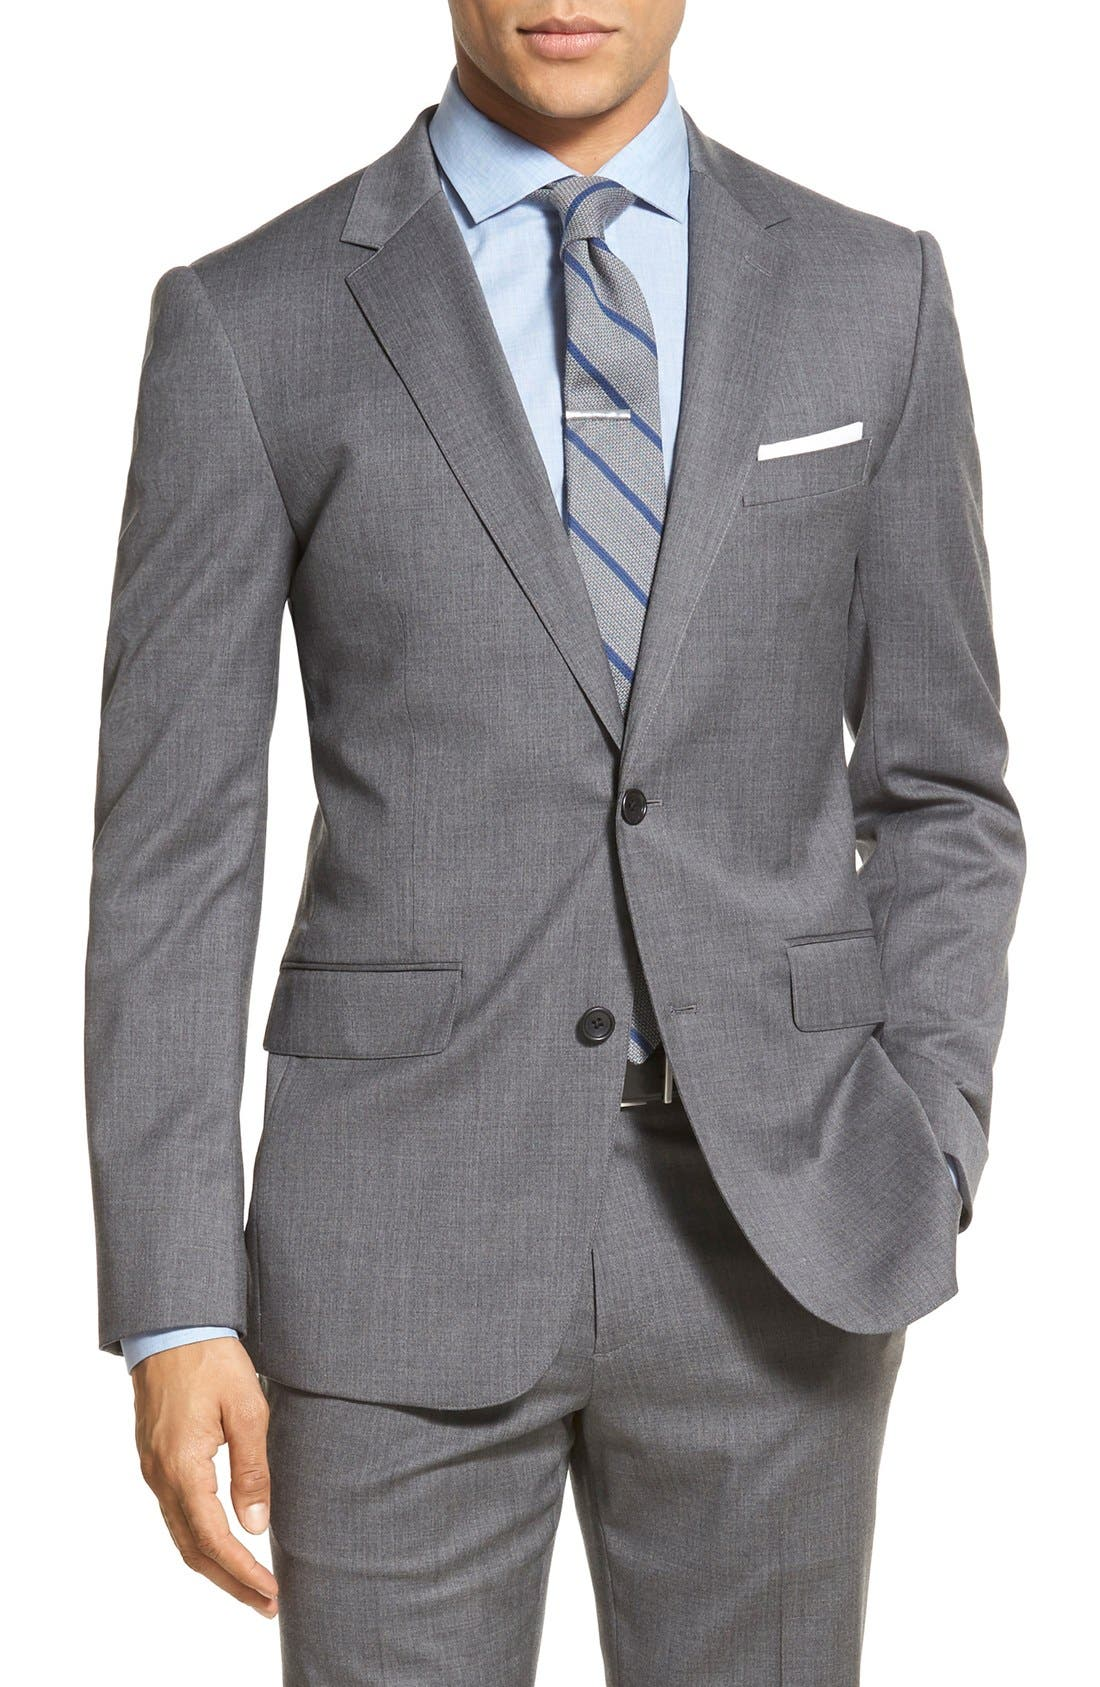 Alternate Image 1 Selected - Bonobos Trim Fit Solid Stretch Wool Sport Coat